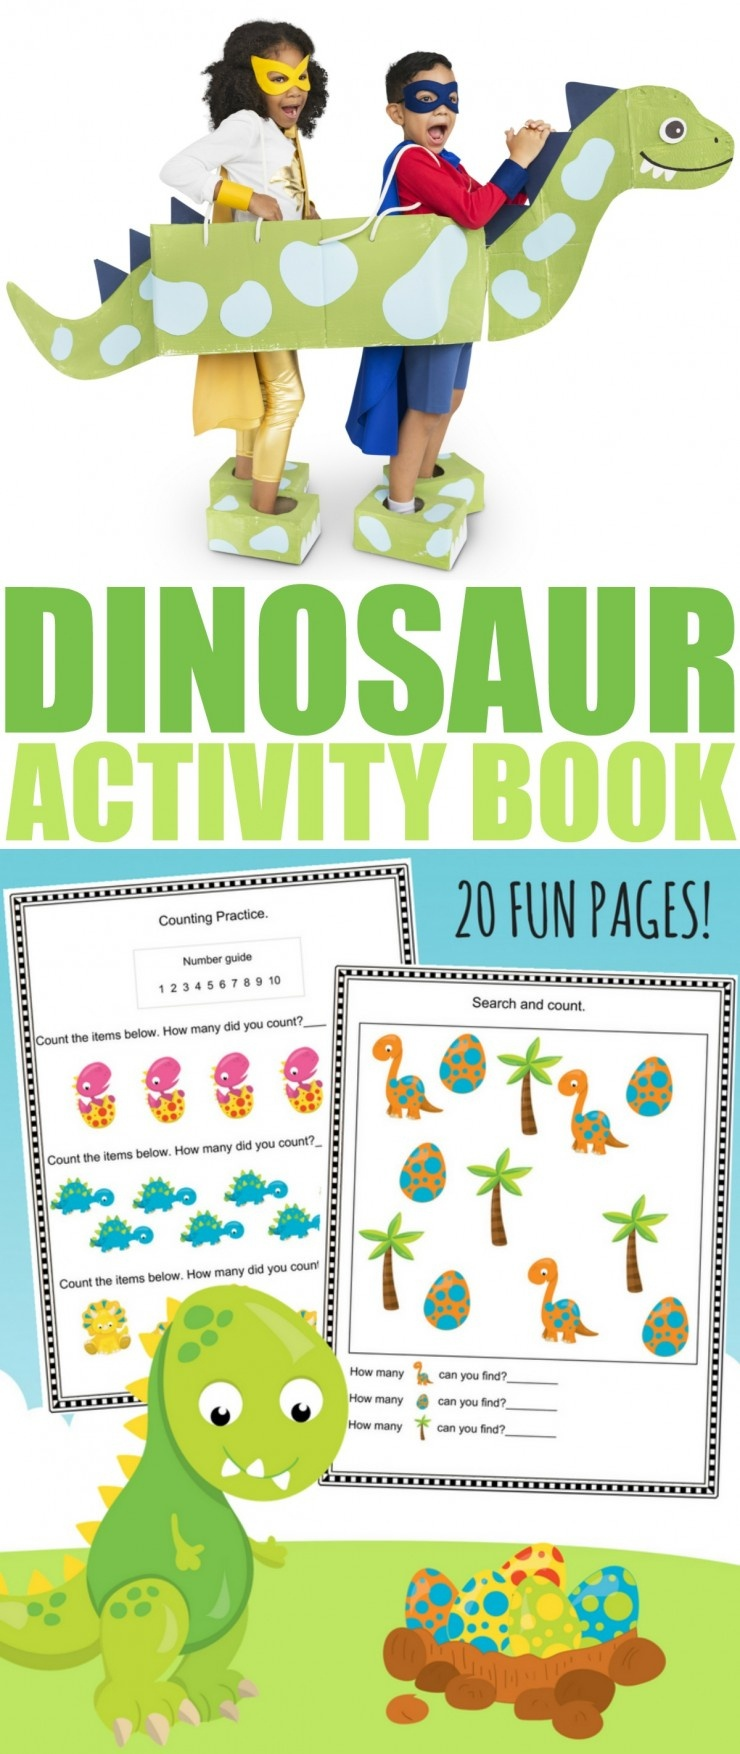 Free Printable Dinosaur Activity Book - Frugal Mom Eh! - Free Printable Books For Kindergarten